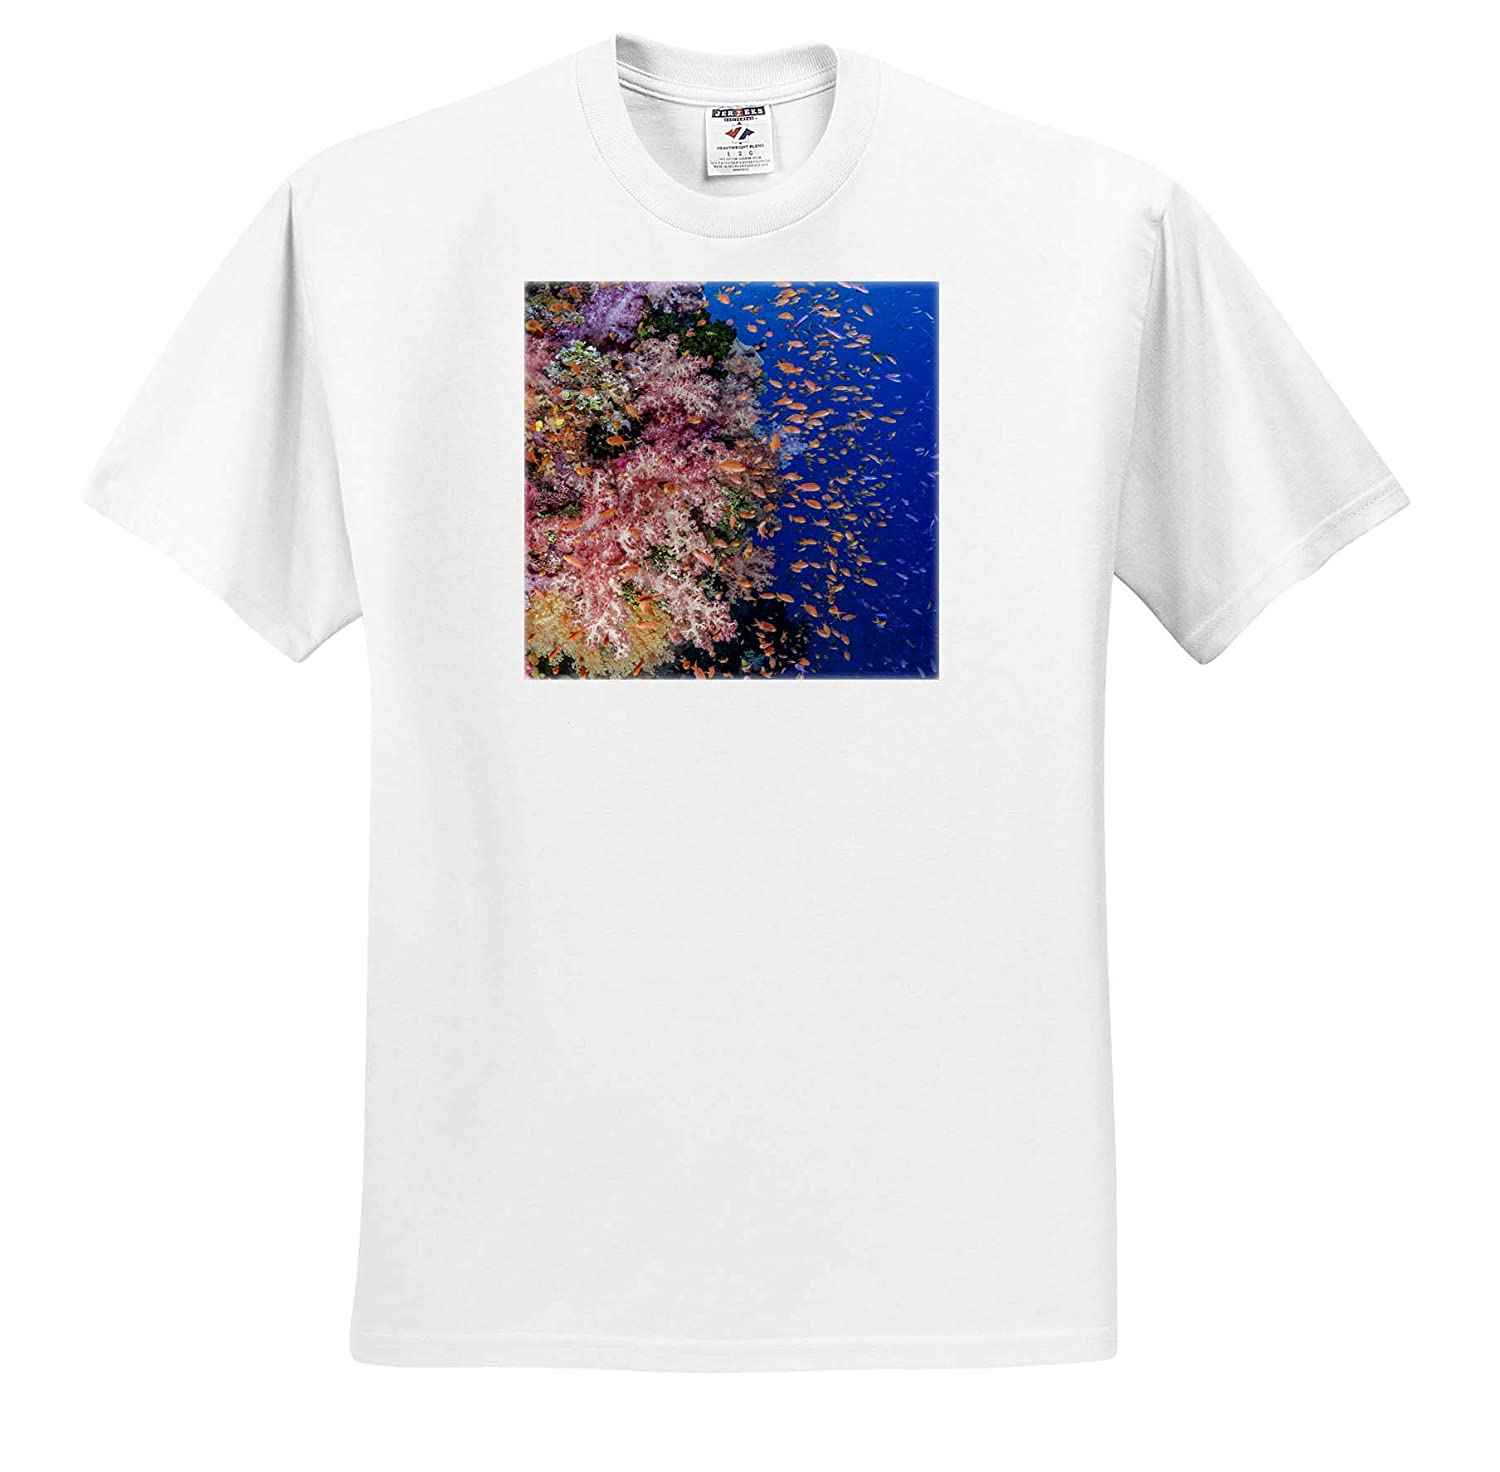 - Adult T-Shirt XL ts/_314016 Underwater Reef with Coral and Anthias 3dRose Danita Delimont Fiji